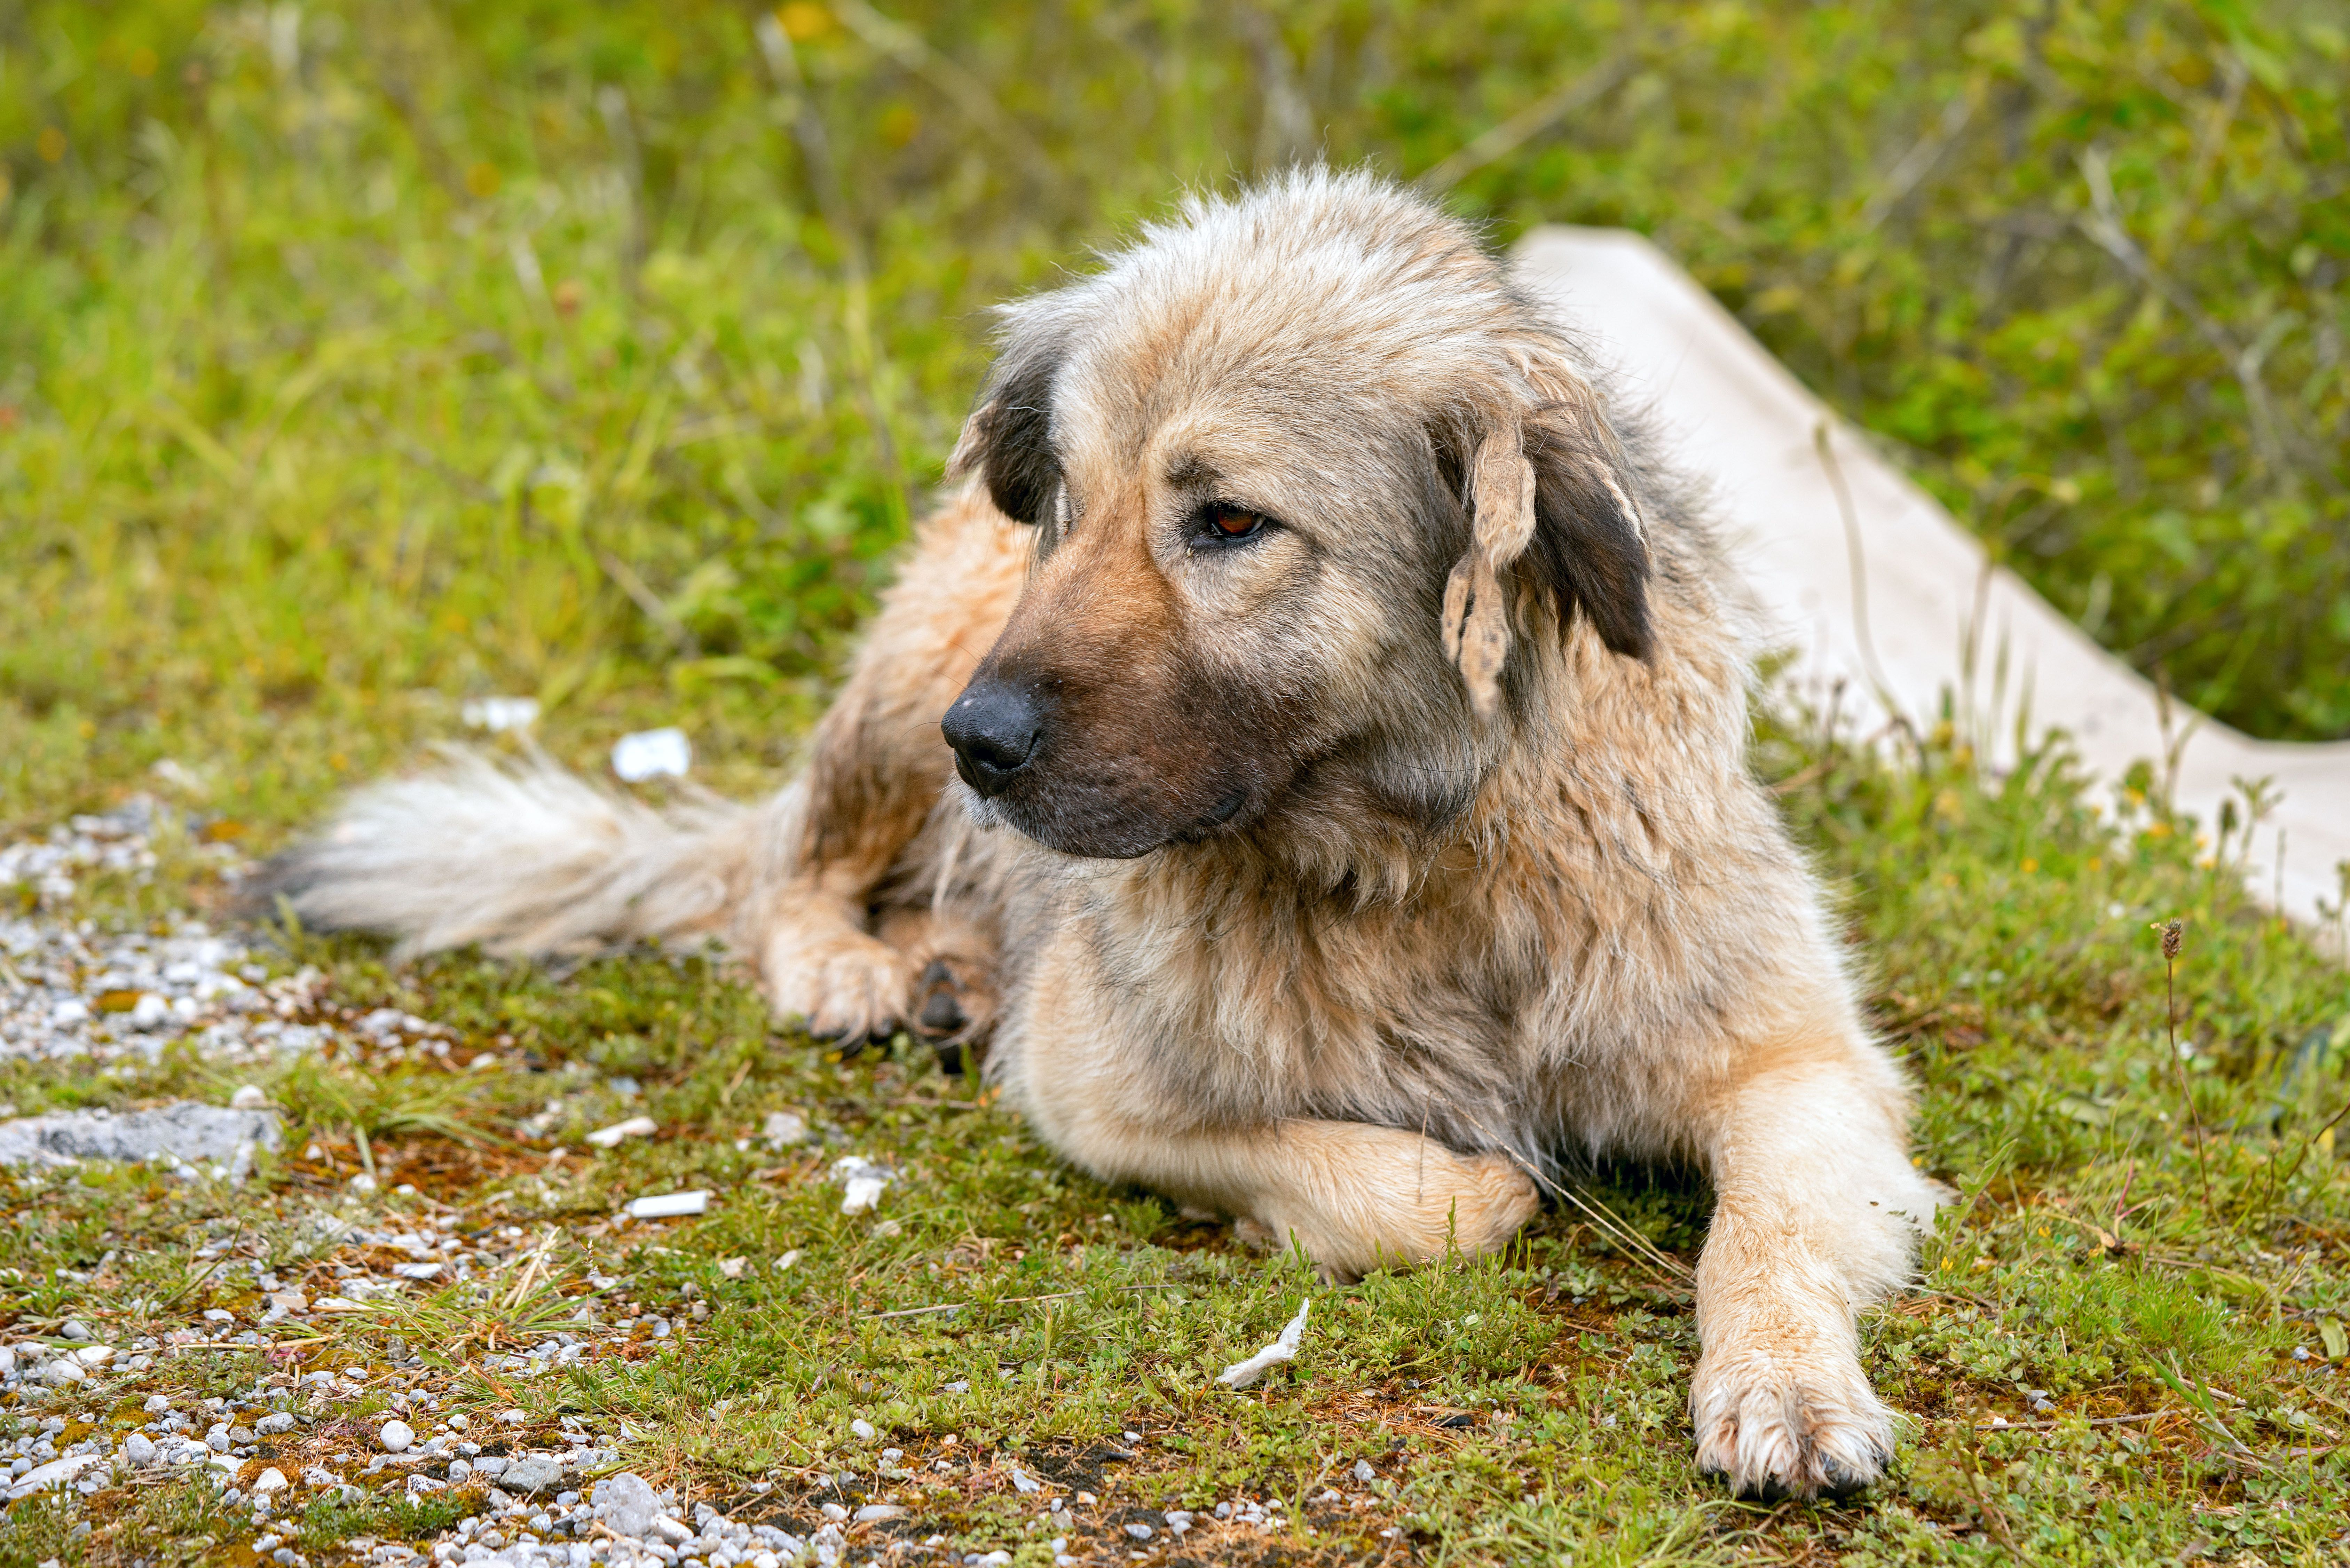 13 Best Guard Dogs to Protect Your Home - Top Guard Dog Breeds